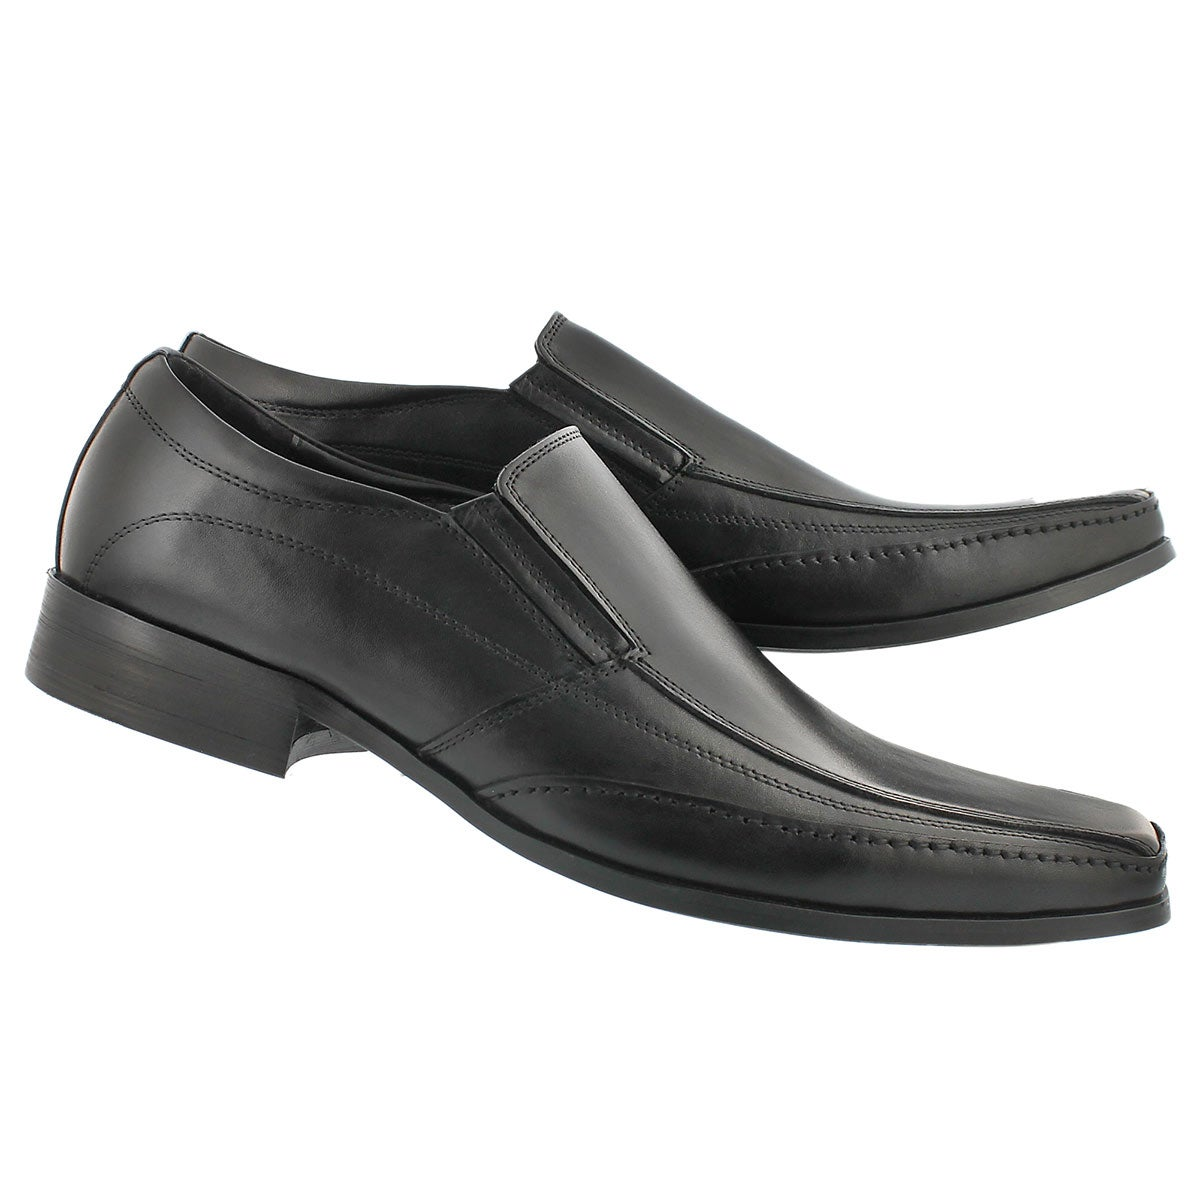 Mns Justin black slip on dress shoe